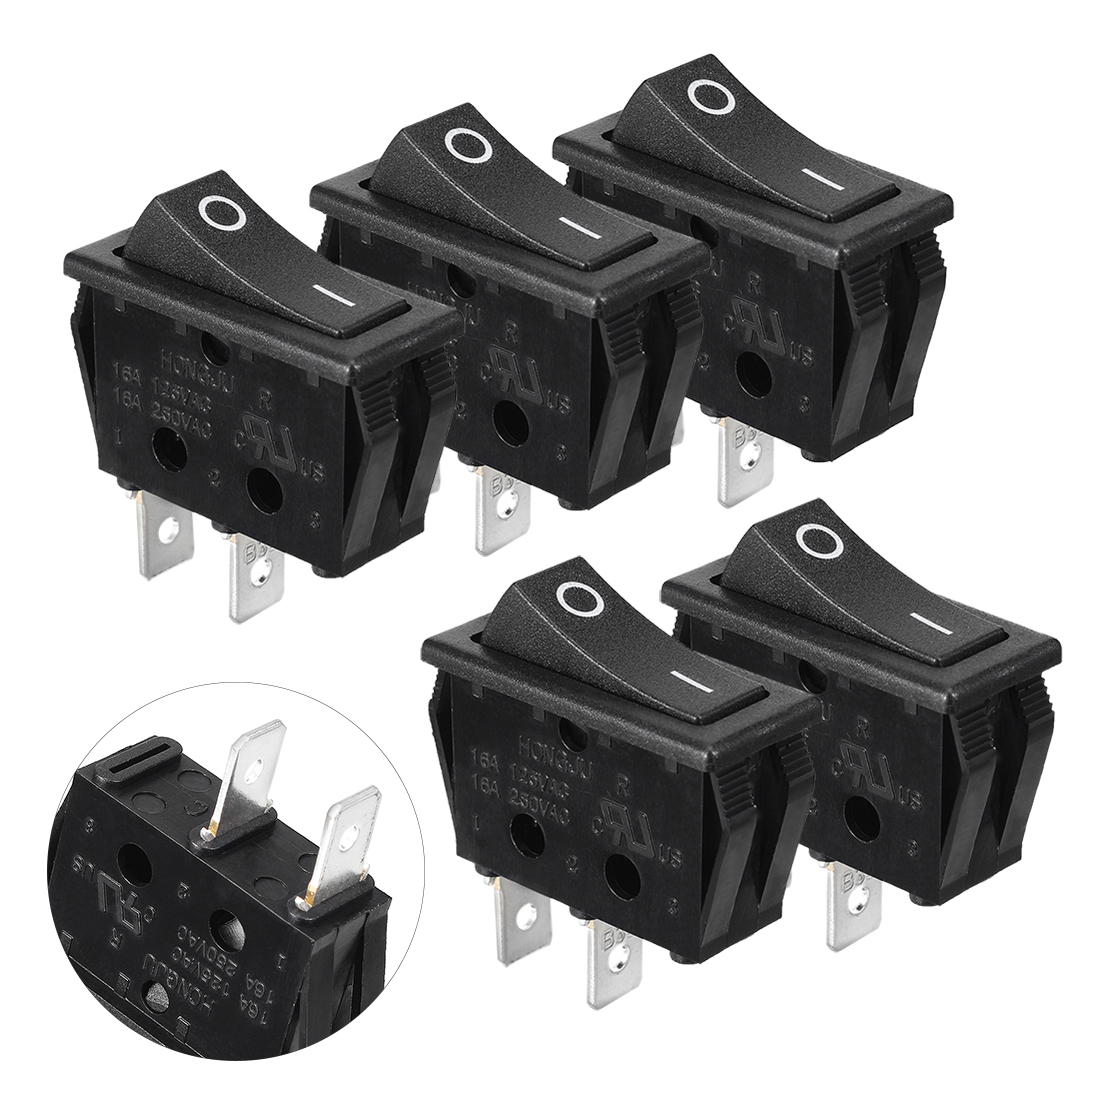 5pcs AC 6A/250V 10A/125V ON/OFF I/O SPST 2 Pole Snap in Boat Rocker Switch Black